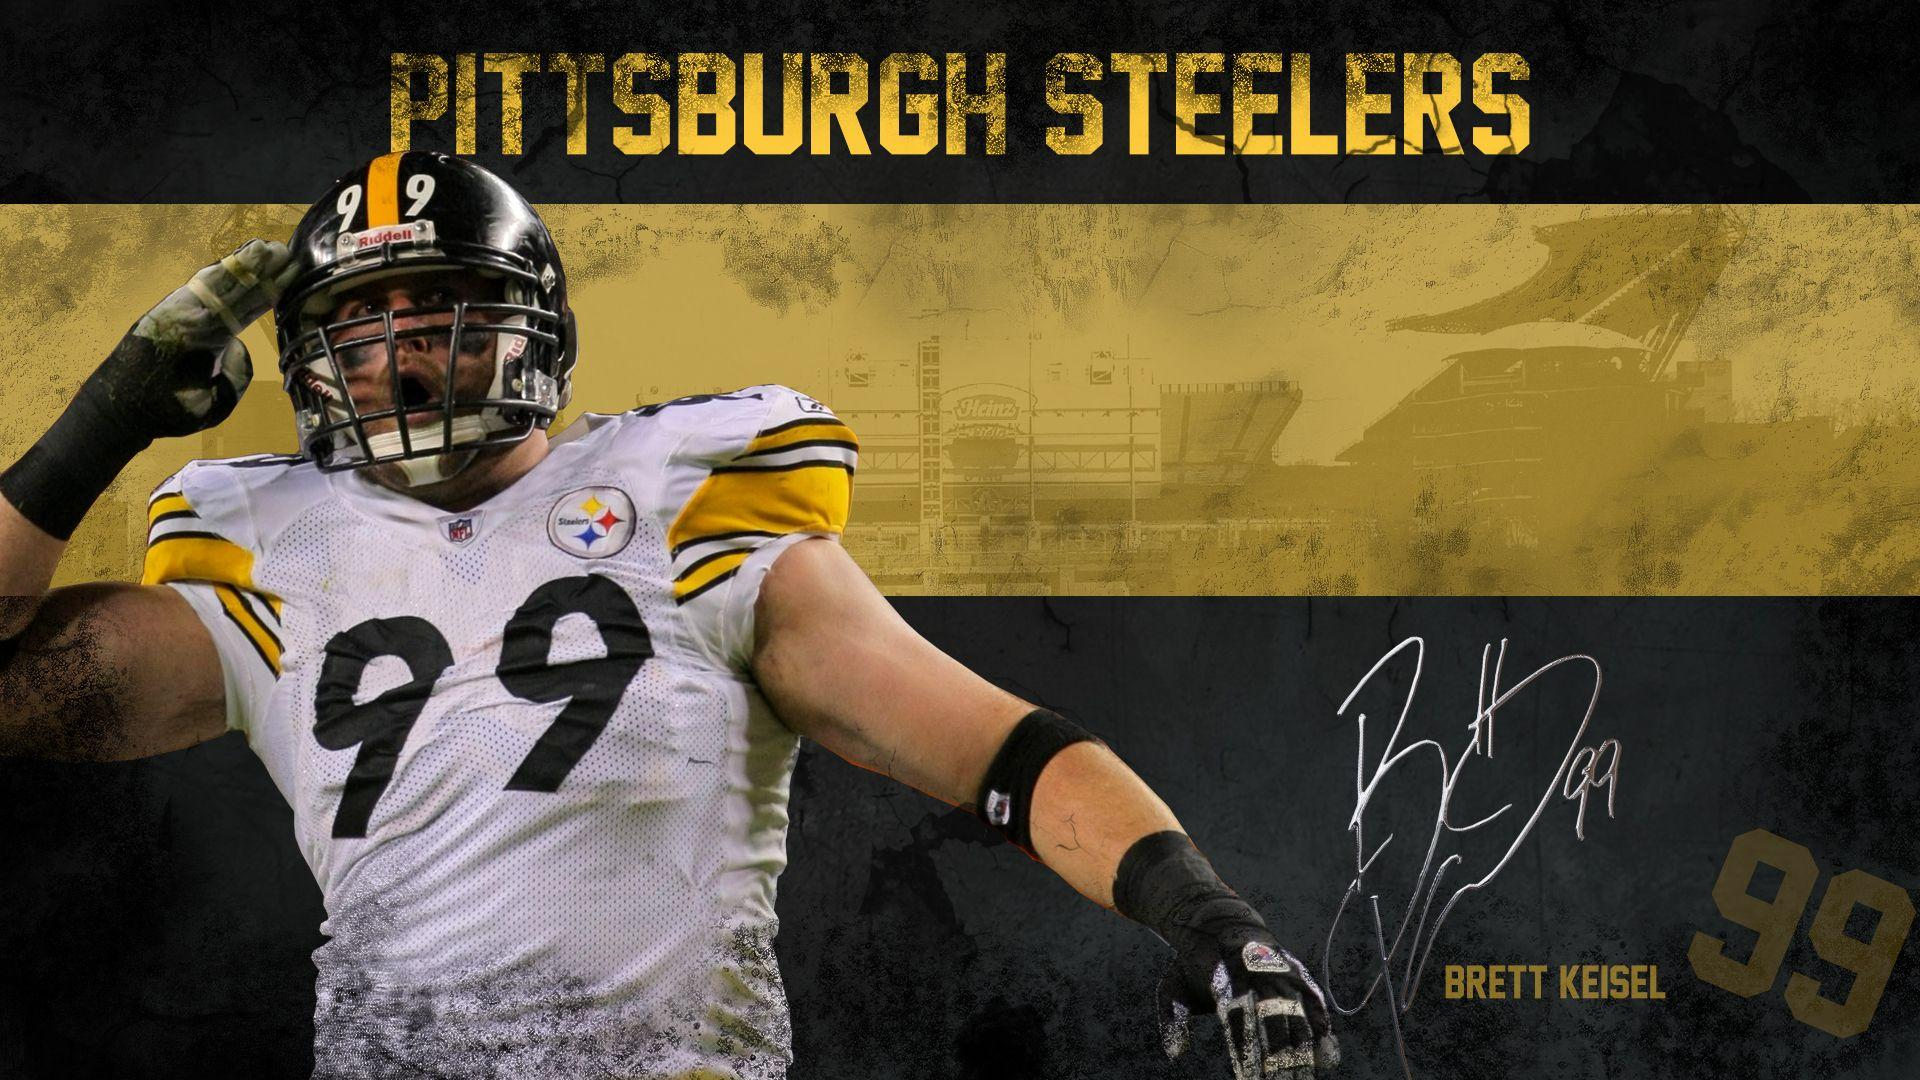 Pittsburgh Steelers image Brett Keisel Wallpapers HD wallpapers and